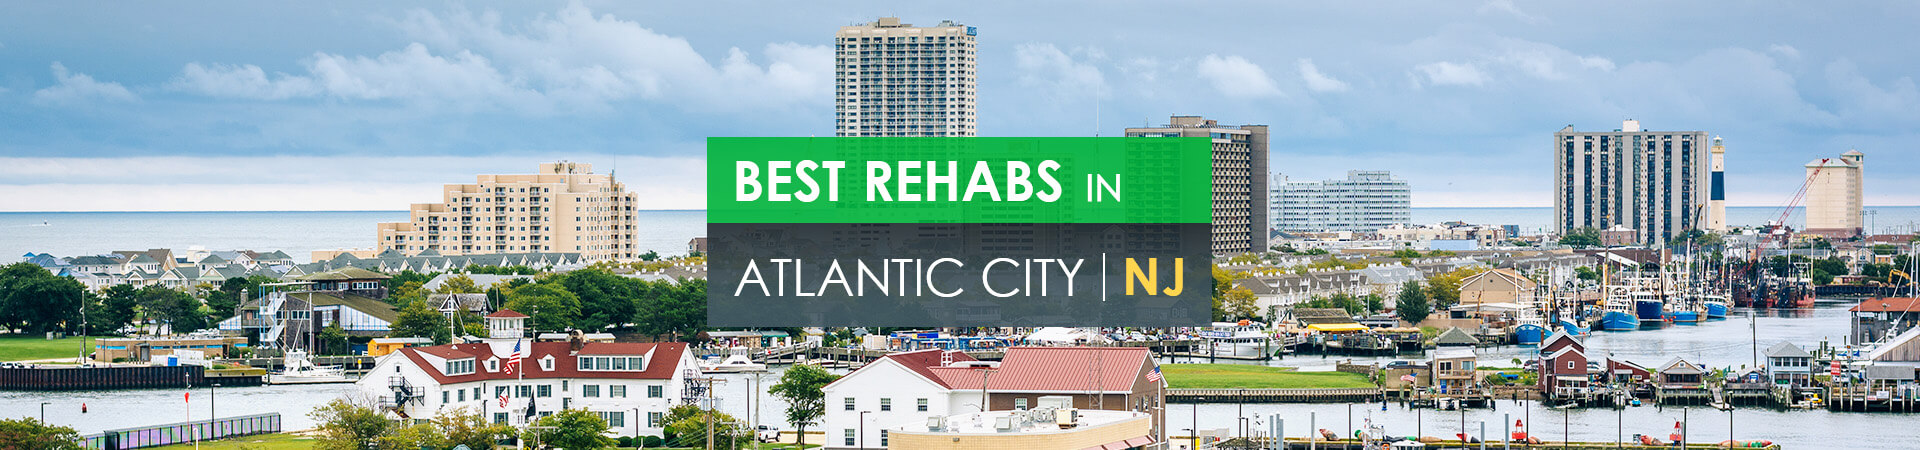 Best rehabs in Atlantic City, NJ